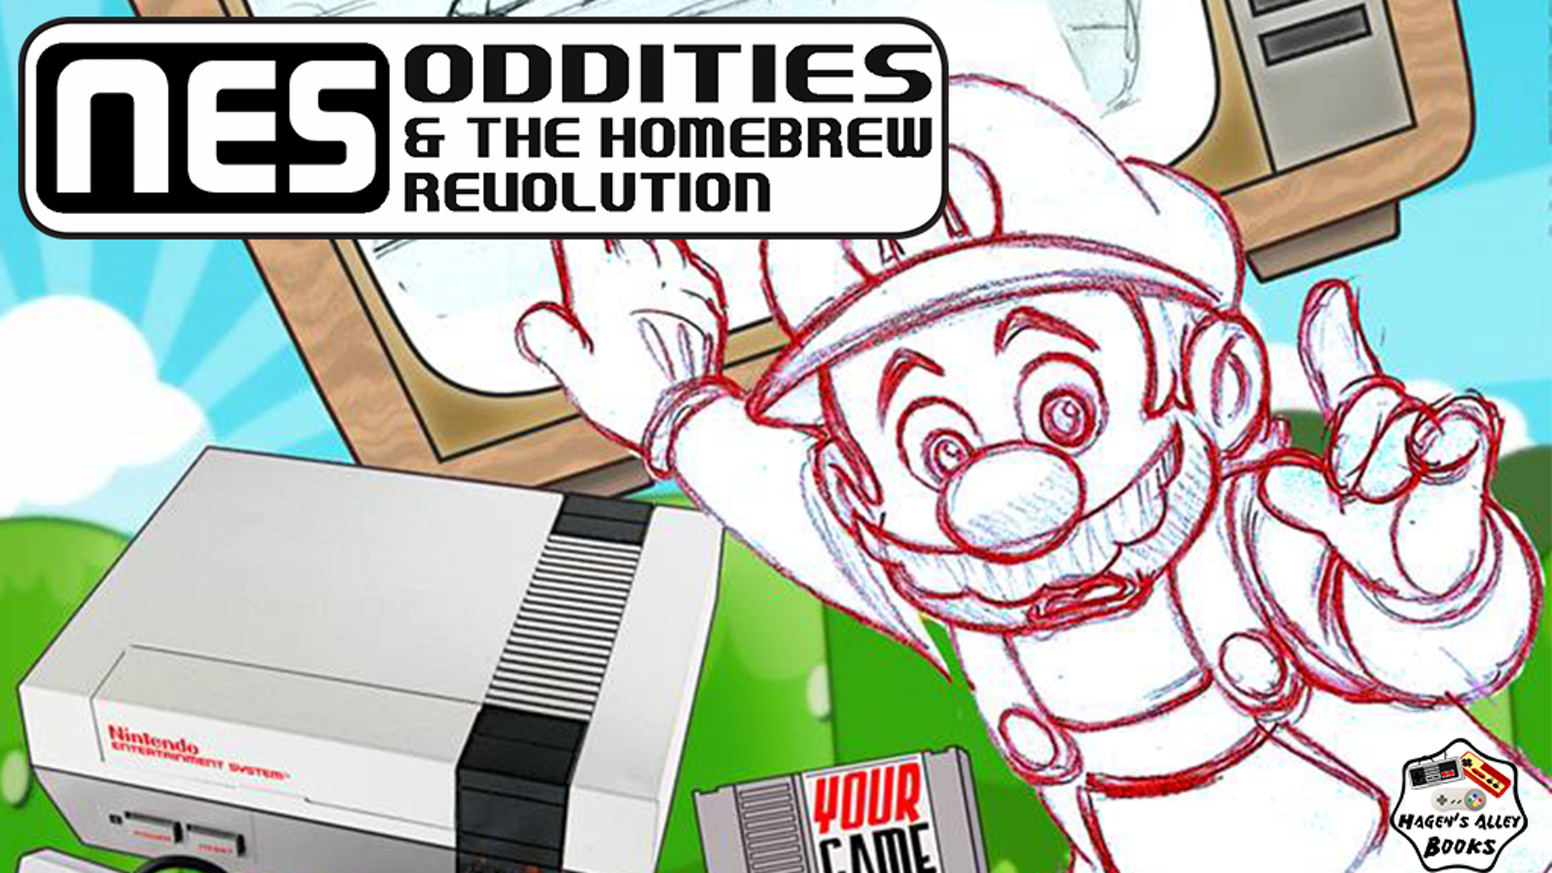 Nintendo Oddities & the Homebrew Revolution: Video Game Book by ...